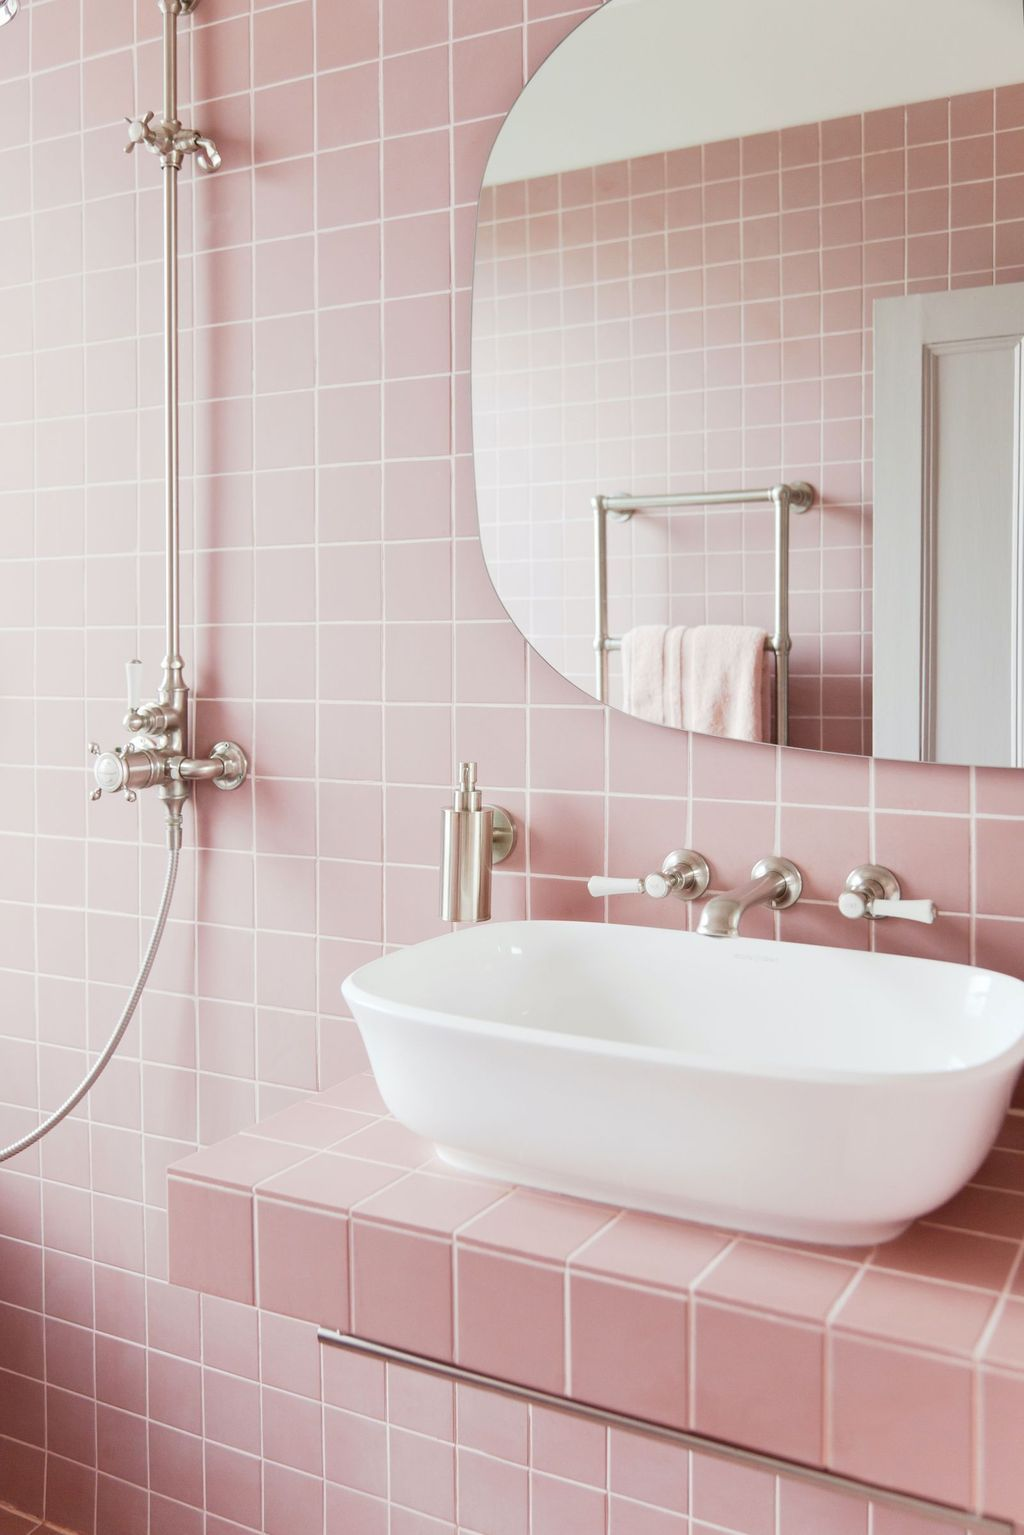 30 Perfect Color Combination For Your Bathroom Design Https Concettadecor Info 30 Perfect Color C Pink Bathroom Tiles Pink Bathroom Bathroom Interior Design